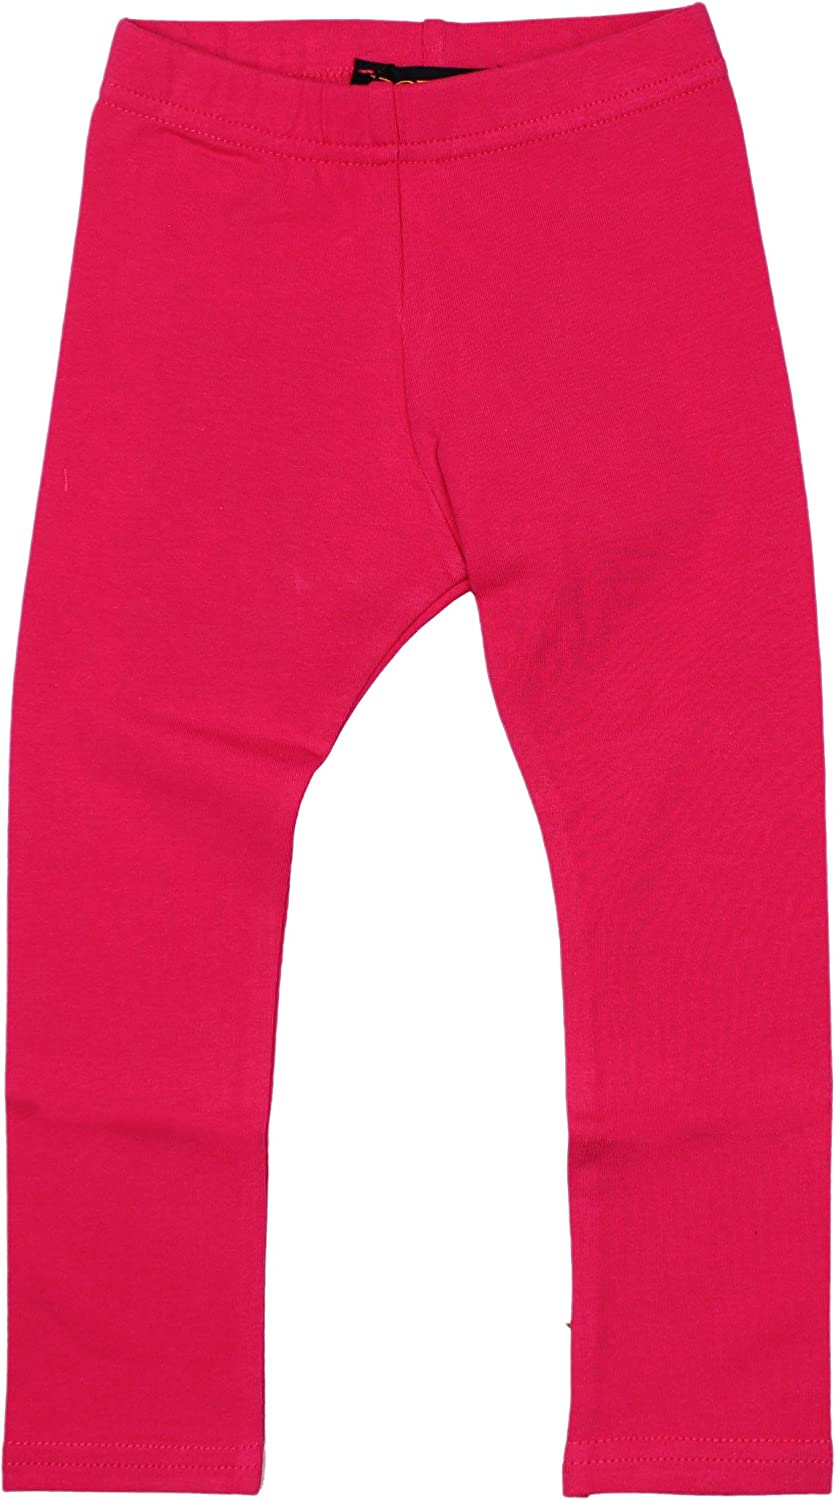 12 Months BGDK Unisex Boys Girls Toddler Cotton Leggings Black Denim